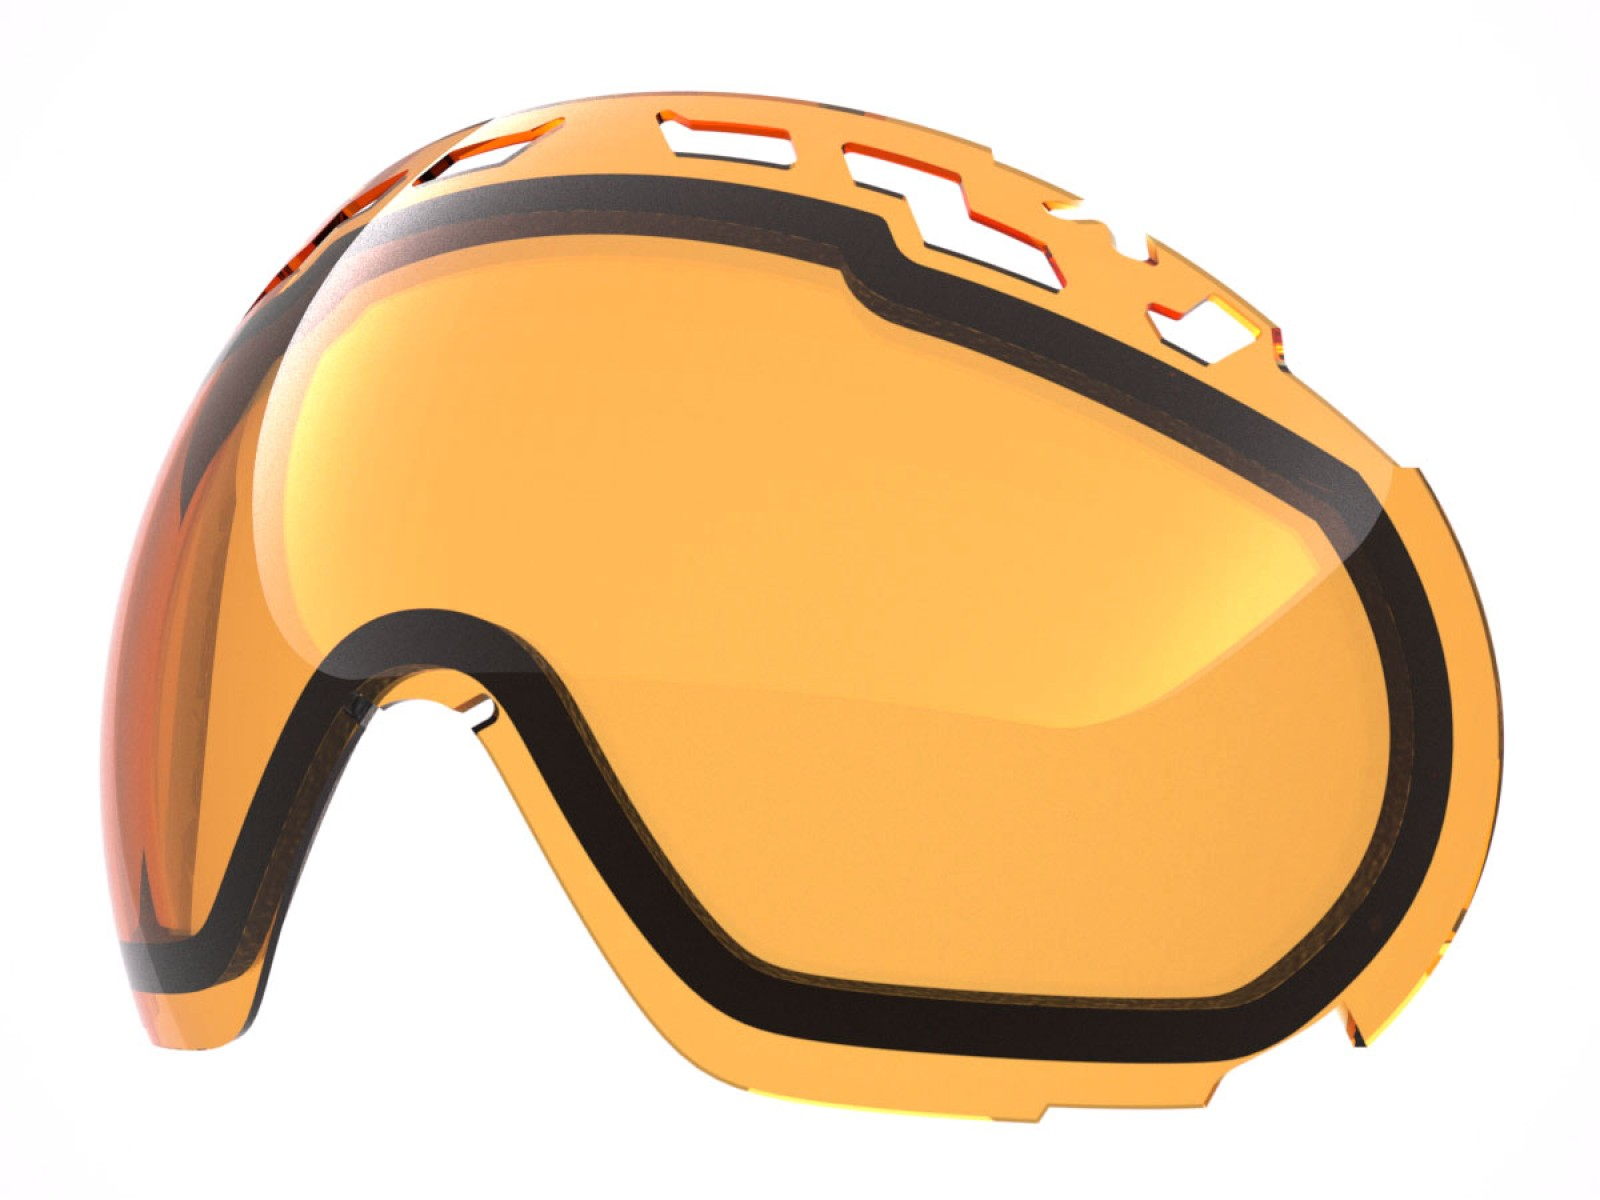 PERSIMMON LENS FOR EDGE SNOW GOGGLE